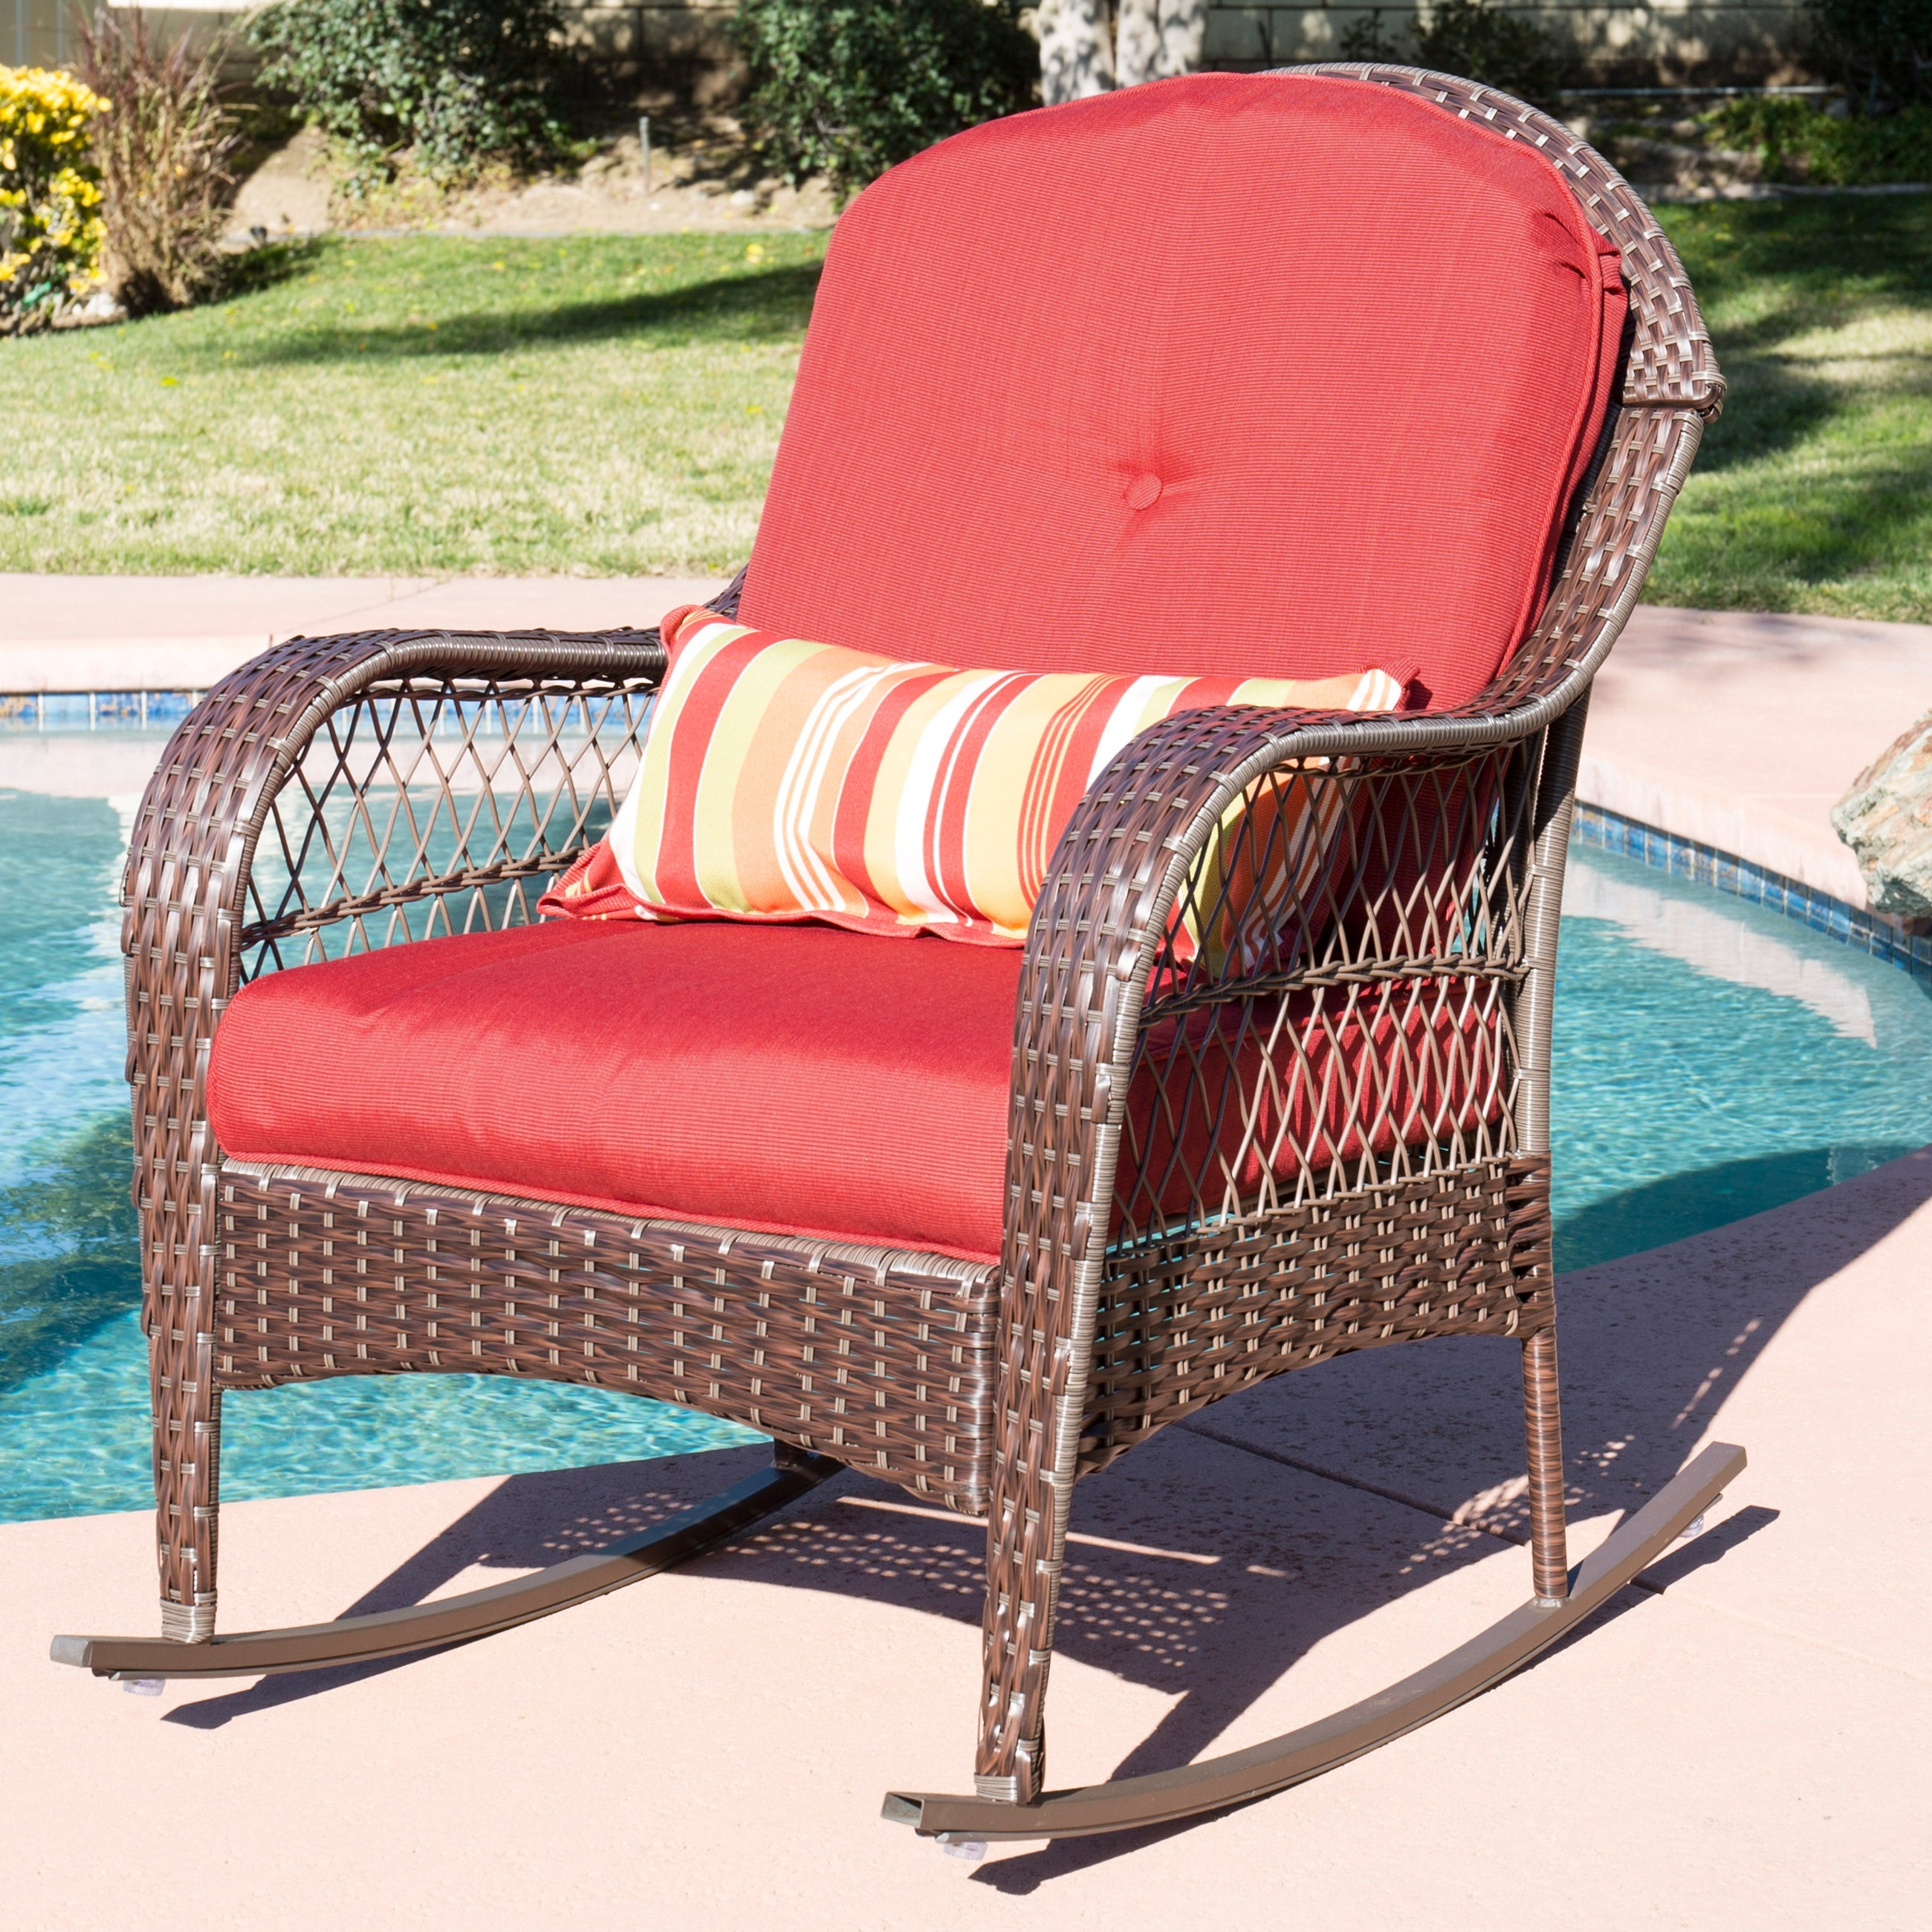 Best Choice Products Wicker Rocking Chair Patio Porch Deck Furniture Throughout Wicker Rocking Chairs For Outdoors (View 10 of 15)